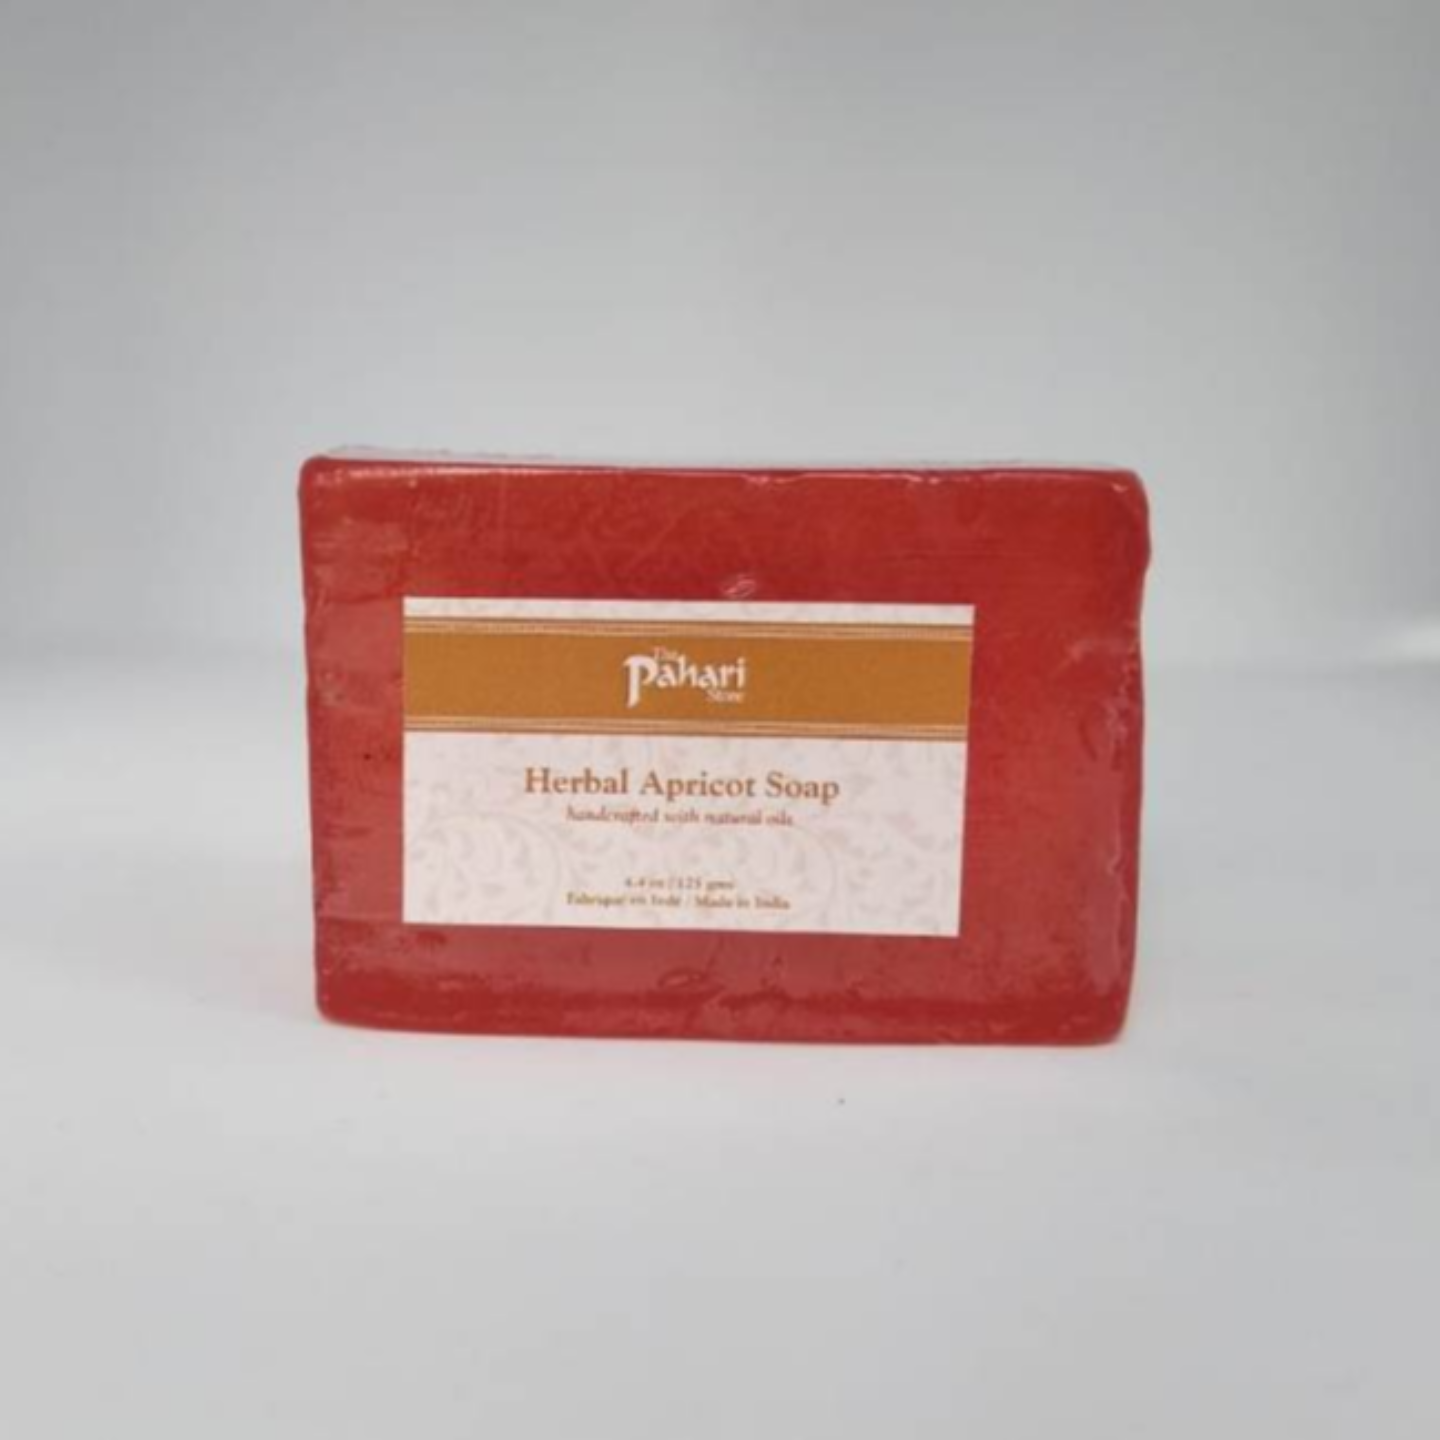 Herbal Apricot Soap